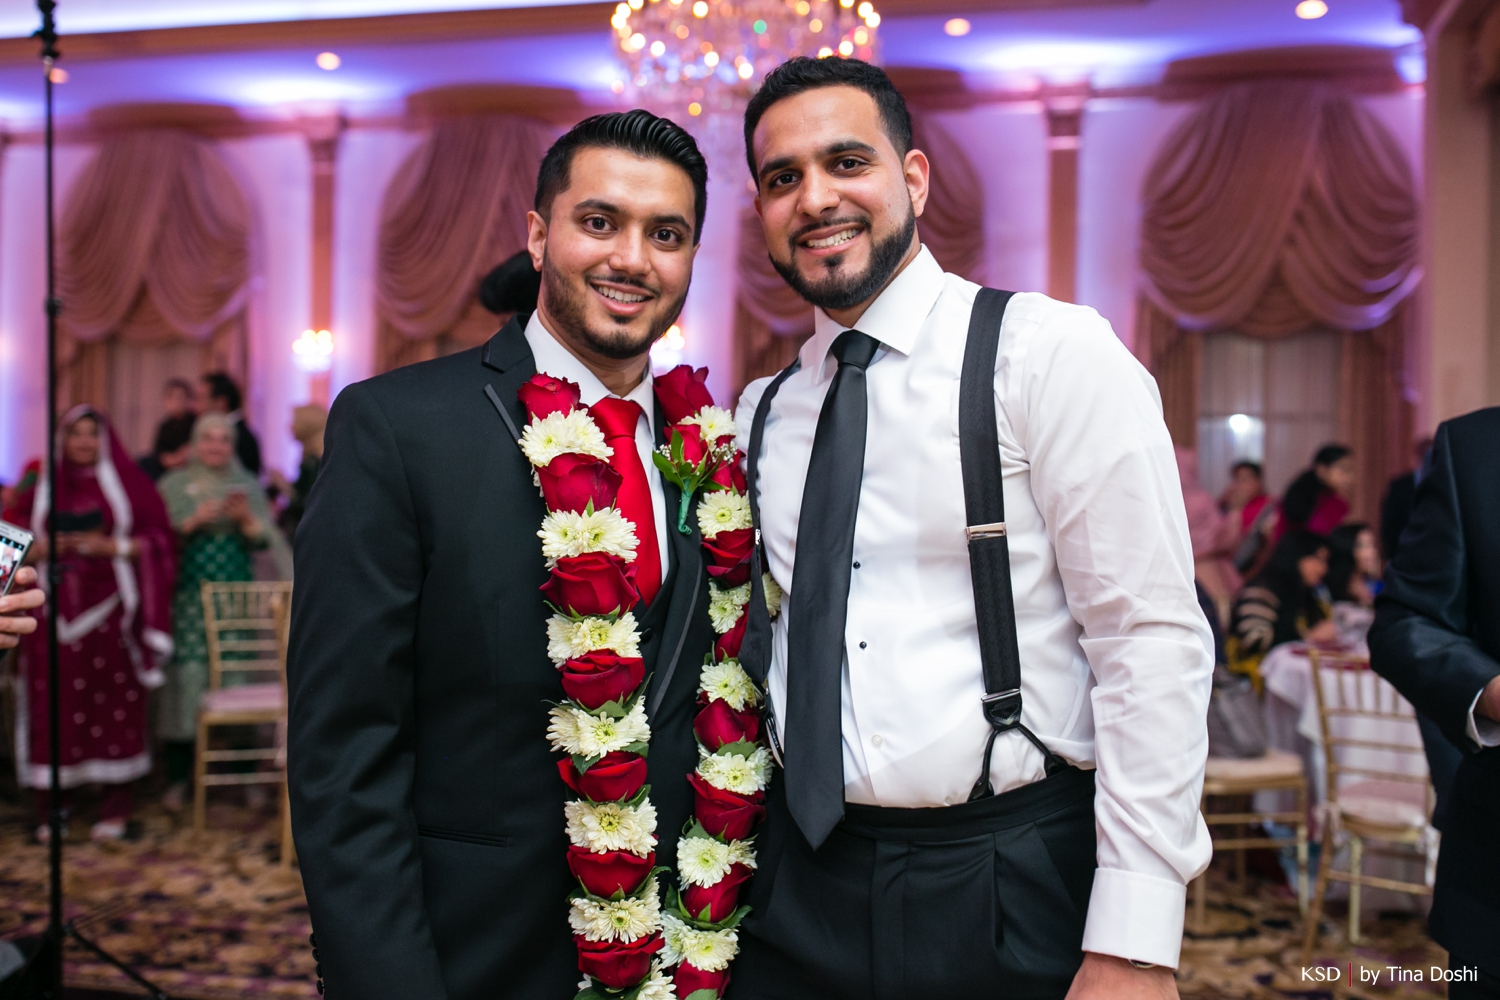 nj_south_asian_wedding_0105